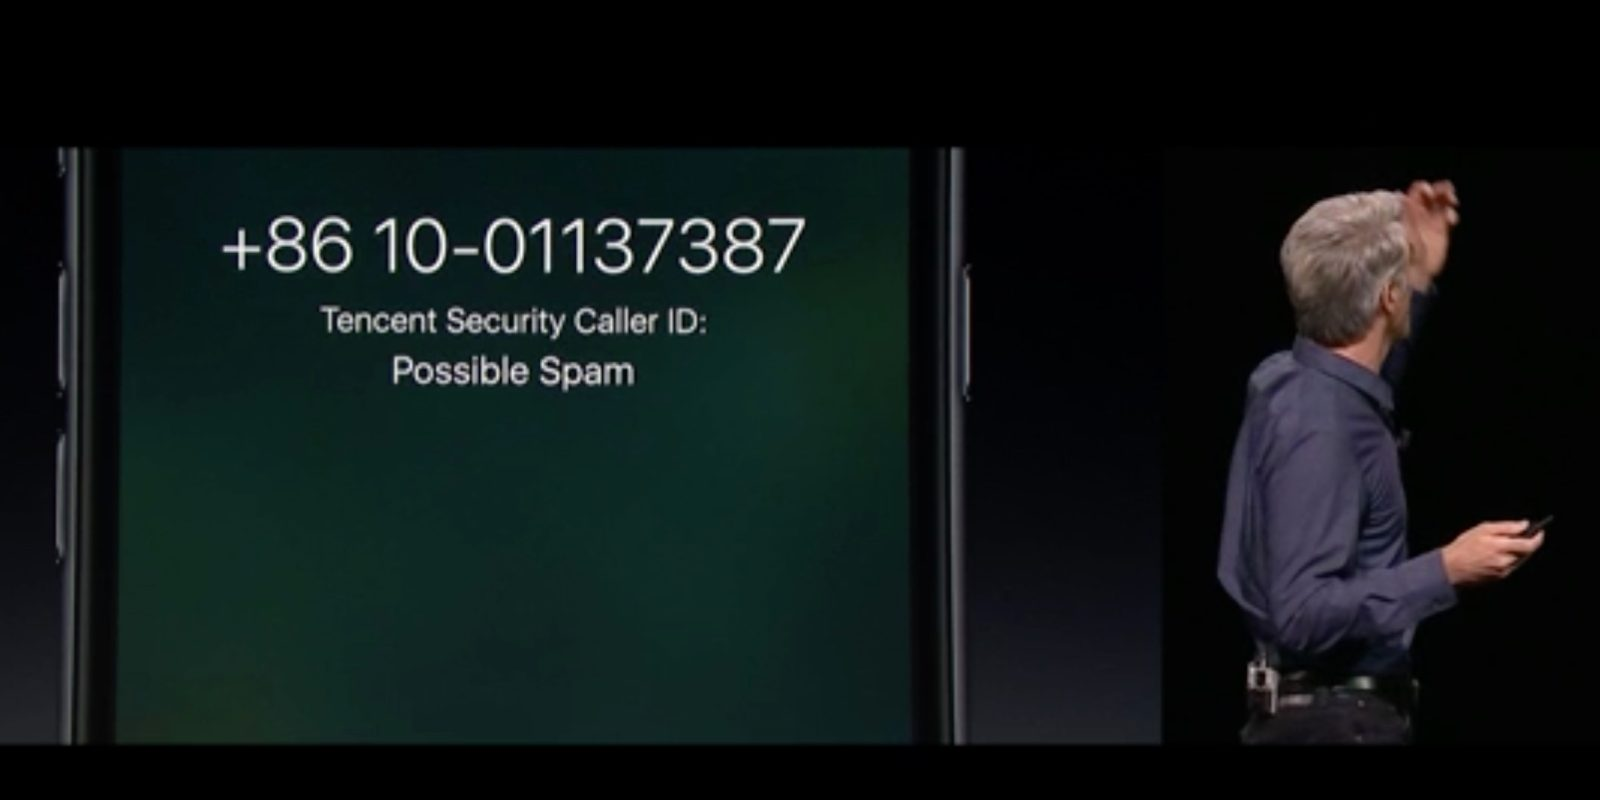 After India Threatened to Ban iPhones, Apple Approved Country's 'DND' Spam-filtering App